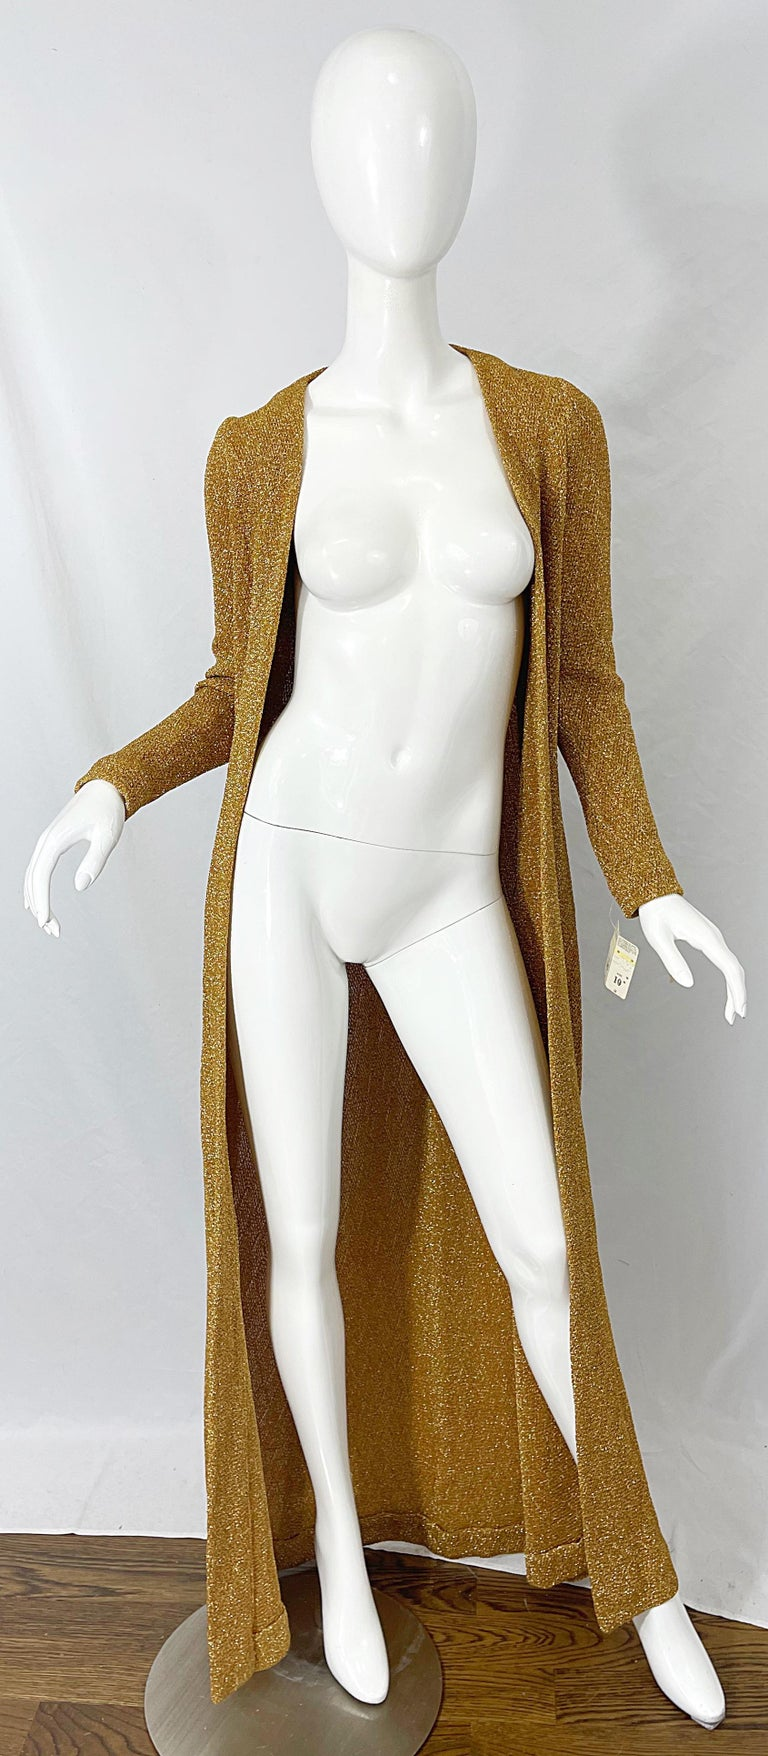 1970s Halston NWT Gold + Silver 70s Vintage Lurex Gown + Duster Cardigan For Sale 4